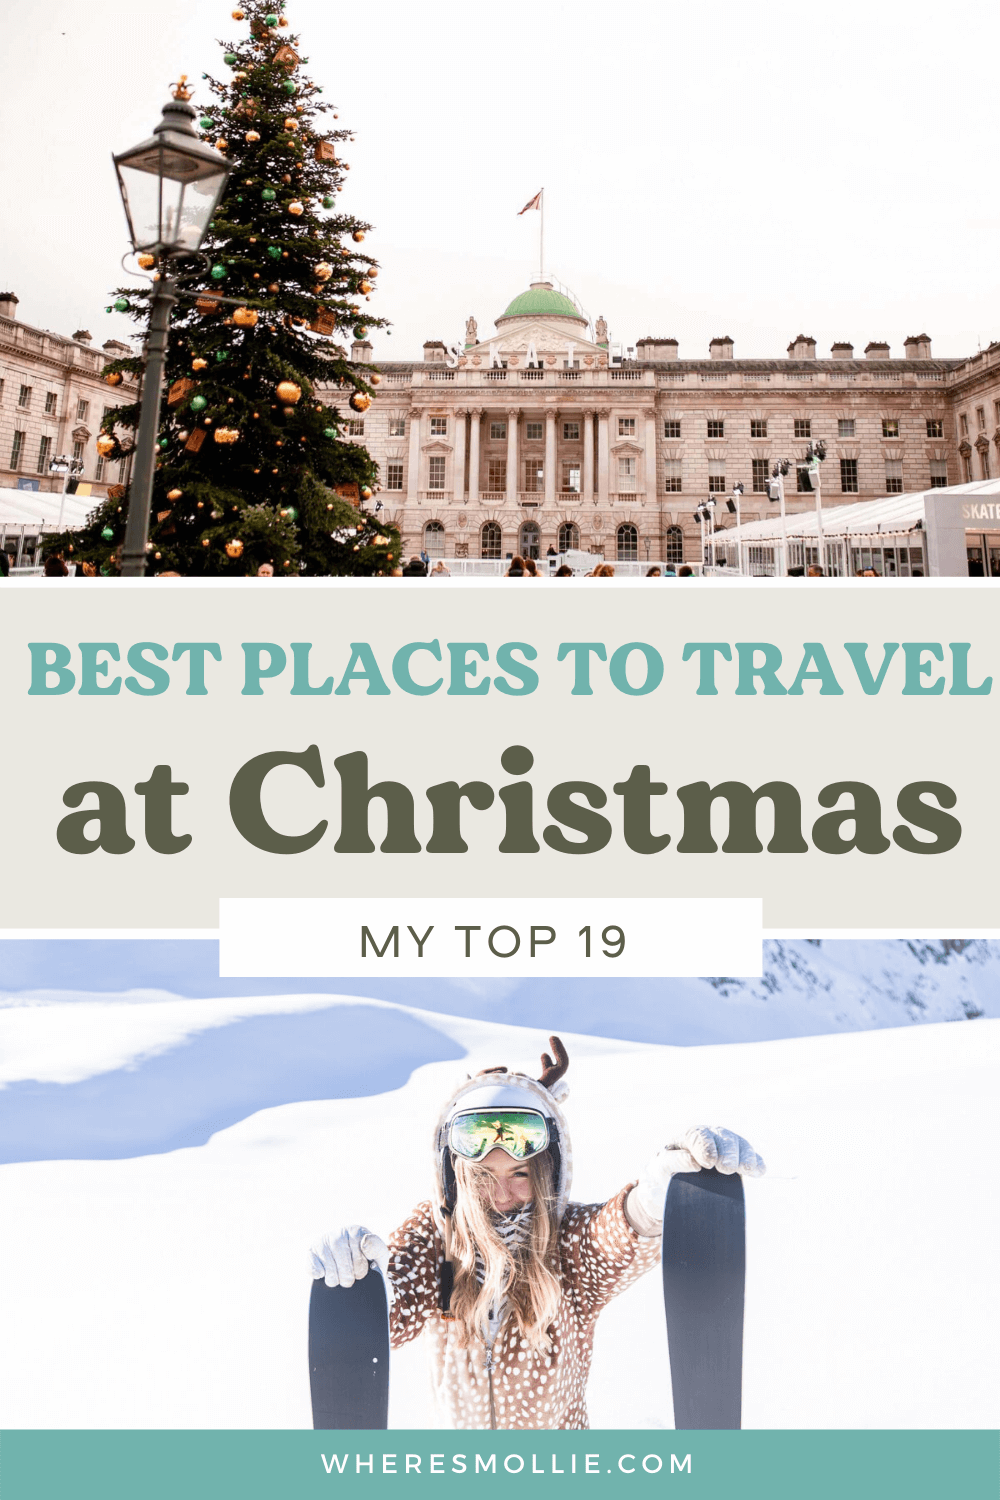 19 of the best places to travel at Christmas